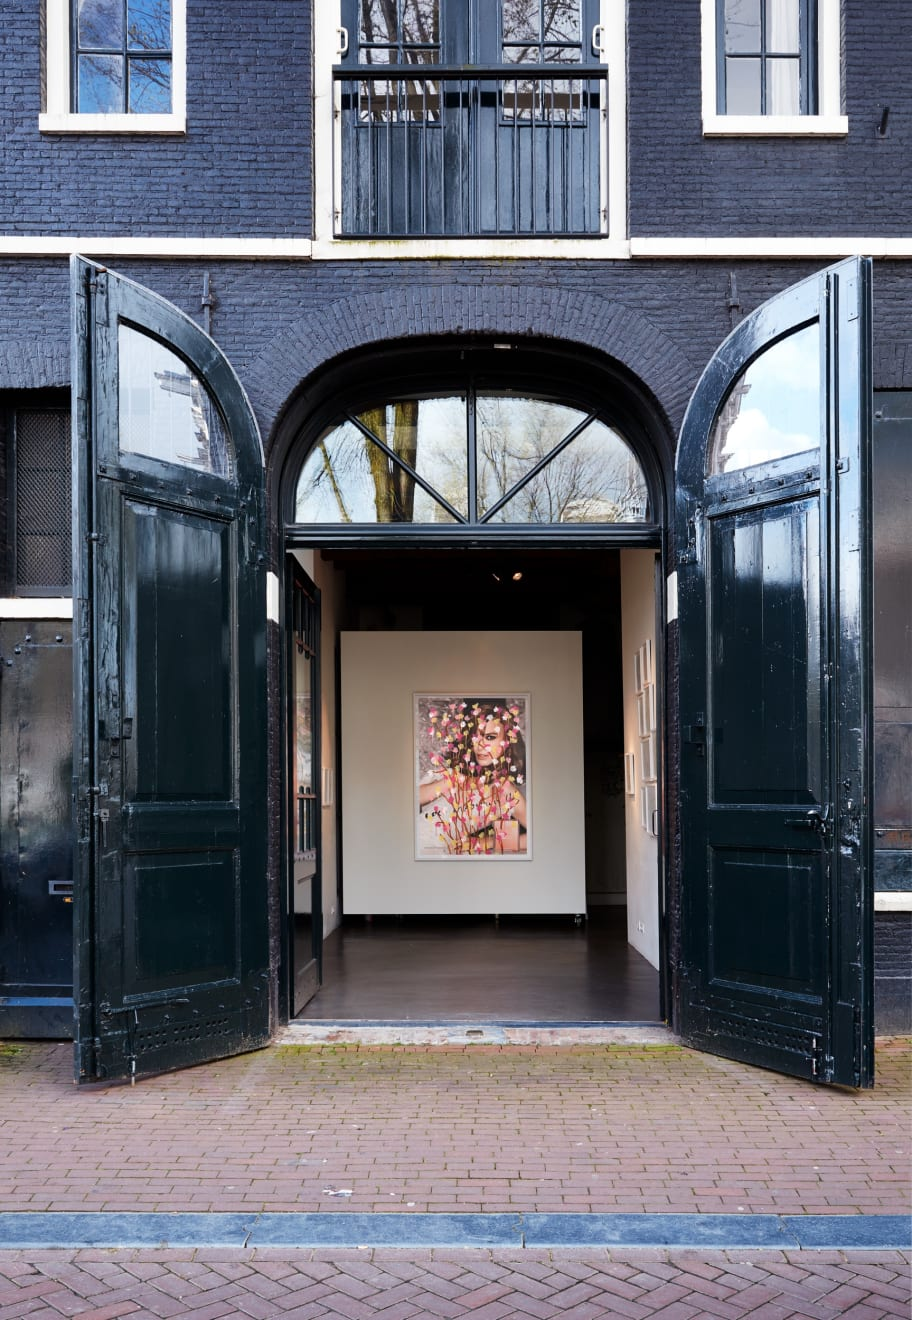 The Garage, Amsterdam, the Netherlands